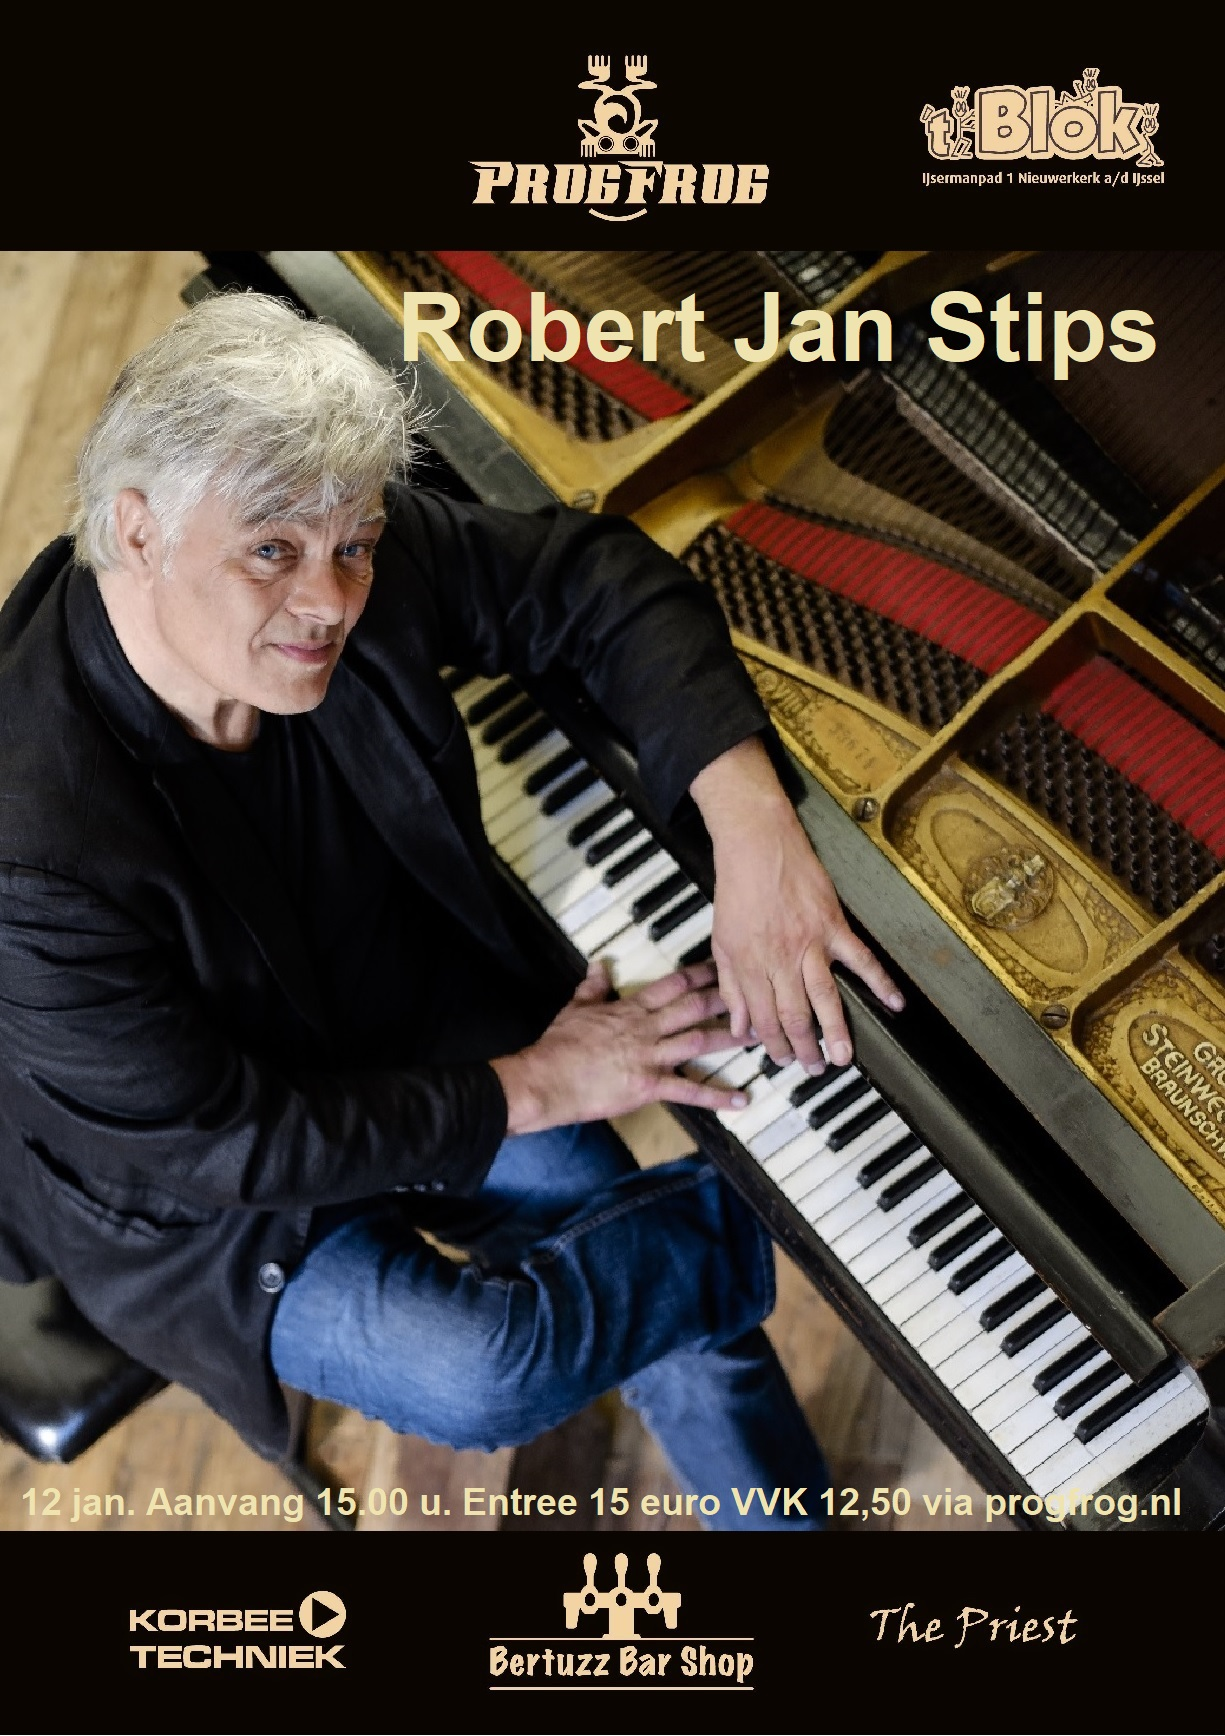 Robert Jan Stips